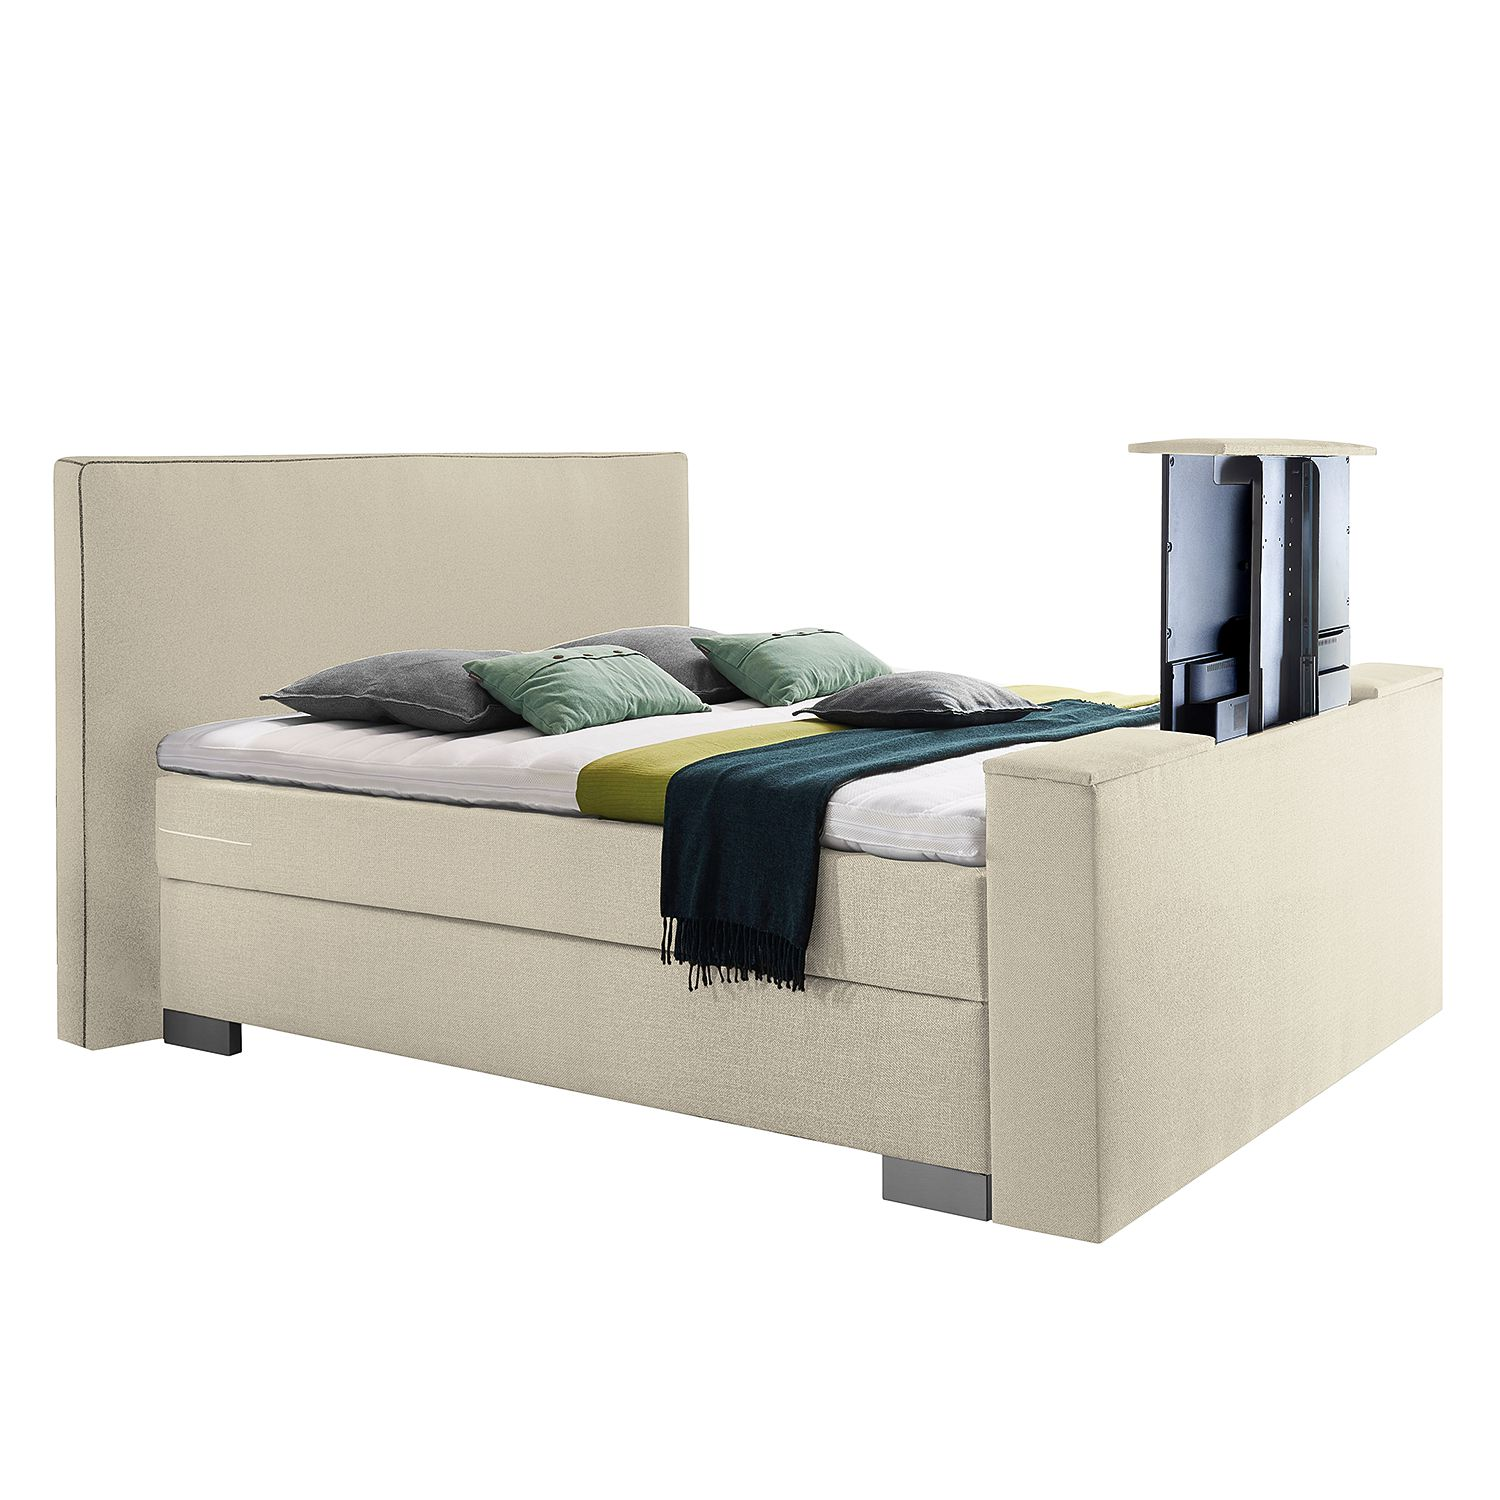 goedkoop Boxspring Emperial Night III 200 x 200cm H2 tot 80kg Bonellvering Crème Grand Selection